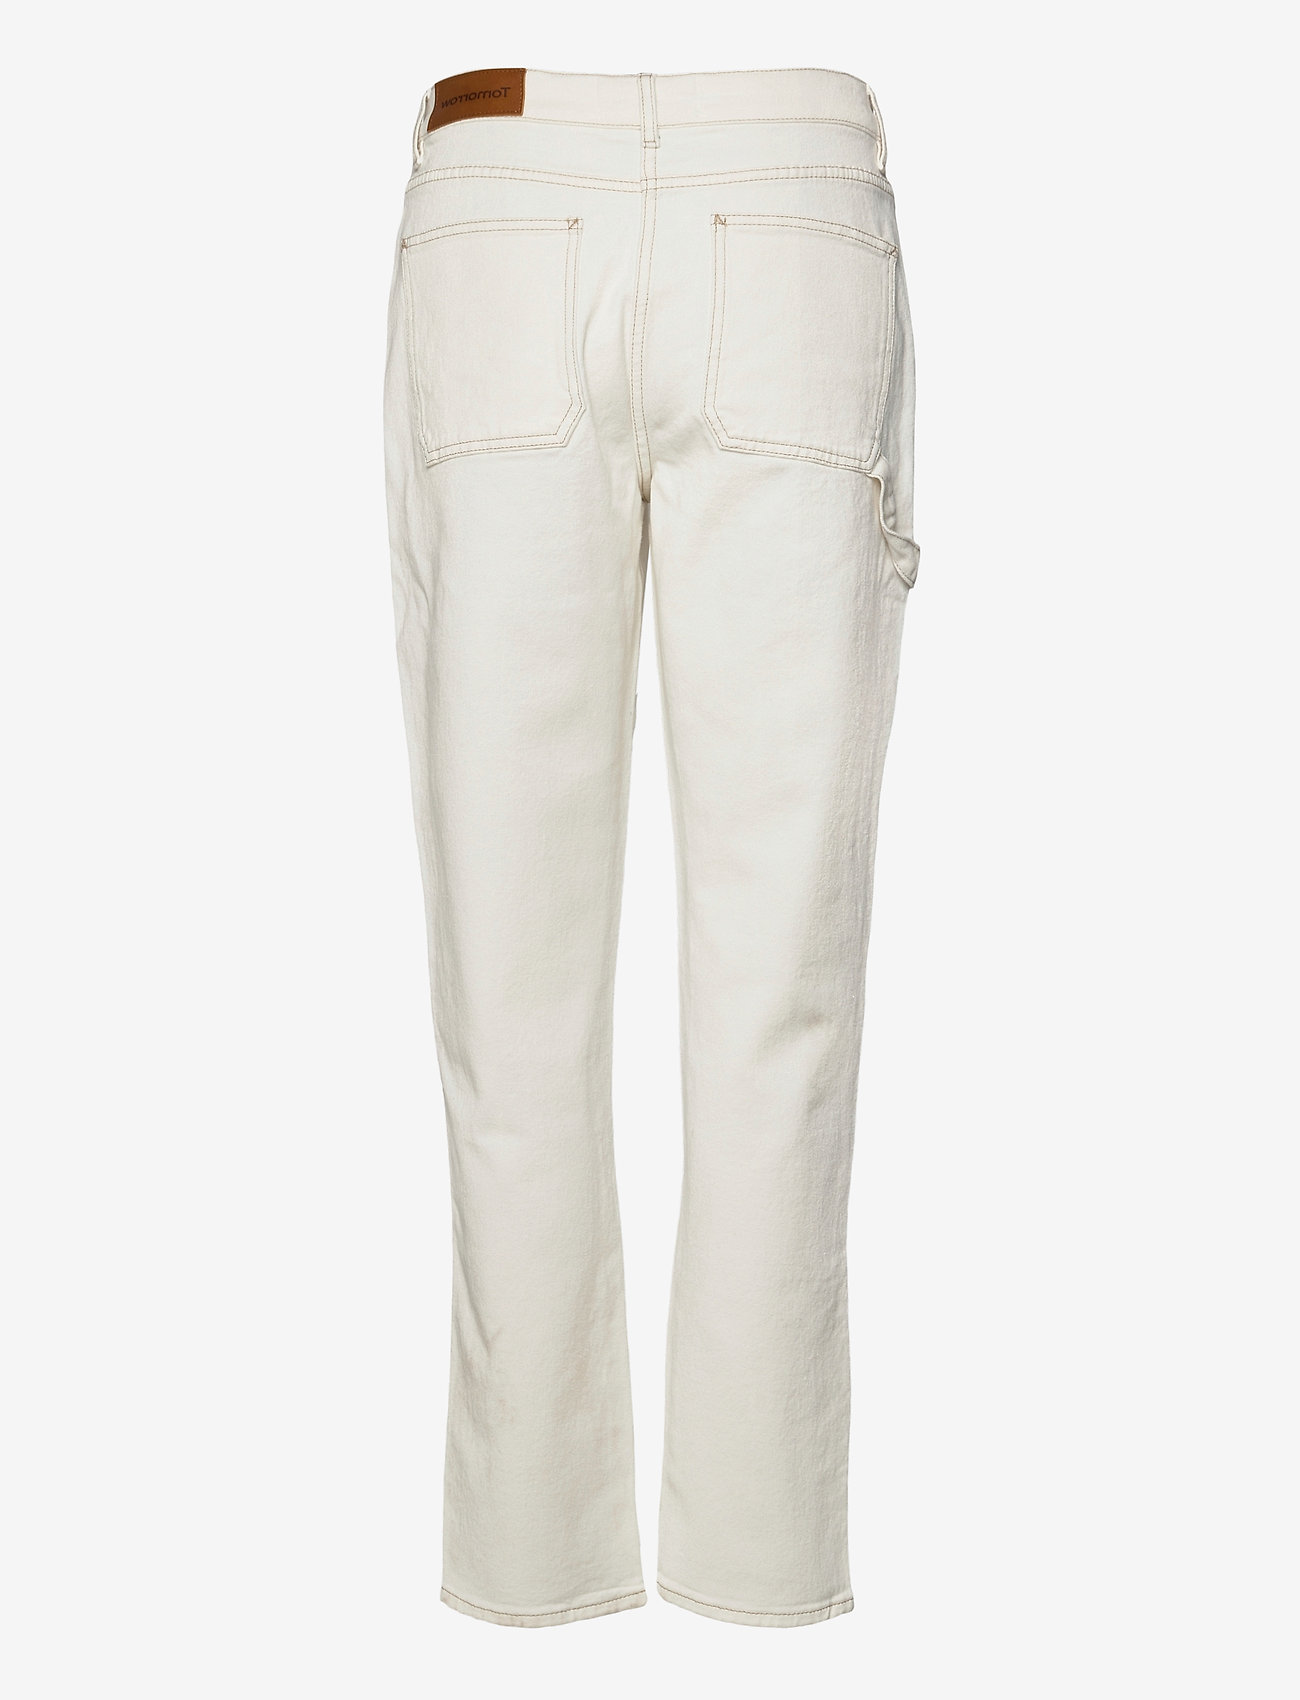 Tomorrow - Lincoln worker pant Ecru - straight jeans - 03 ecru - 1